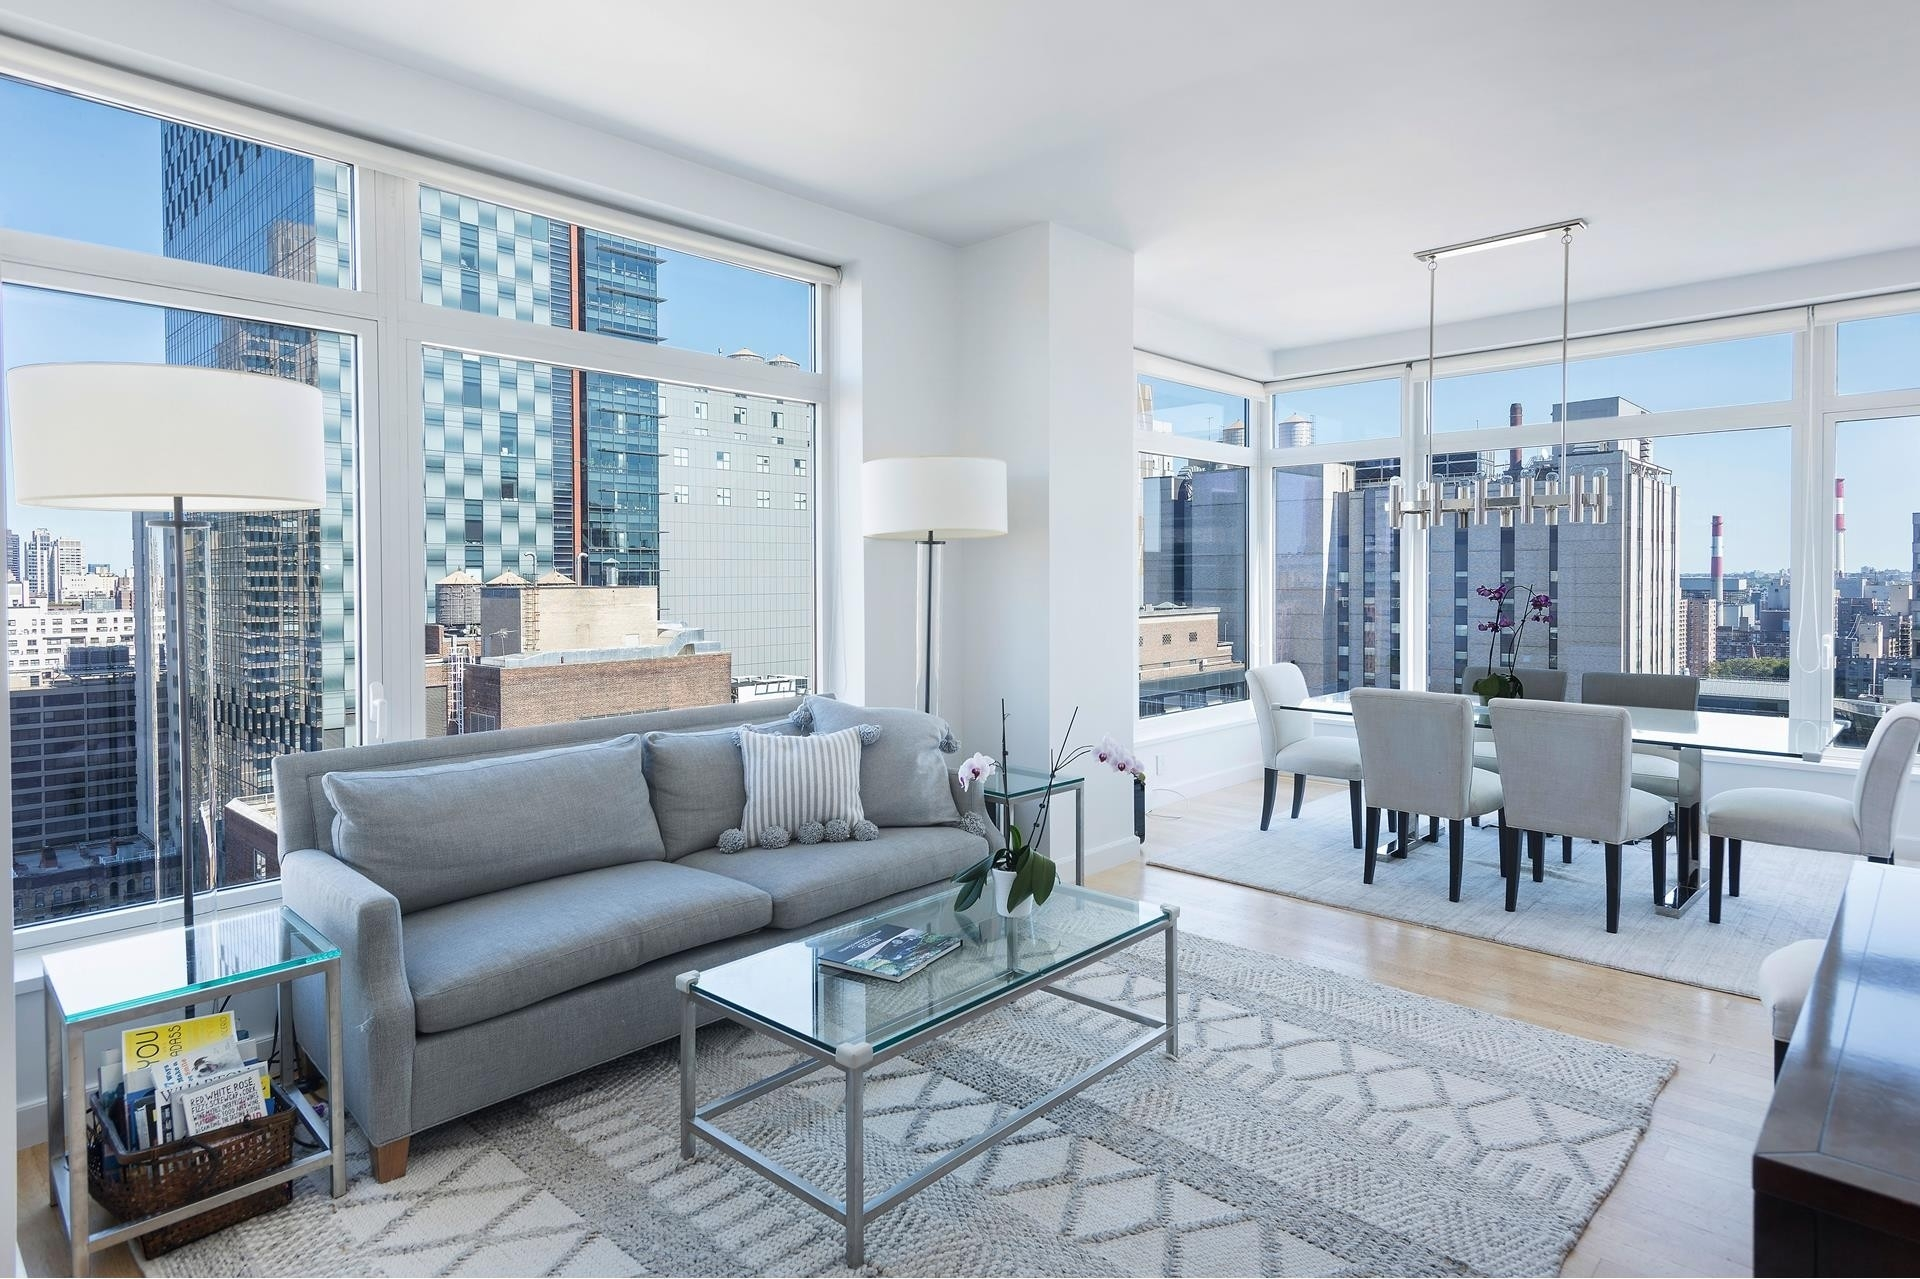 Property à The Laurel, 400 East 67th St, 20C Lenox Hill, New York, NY 10065